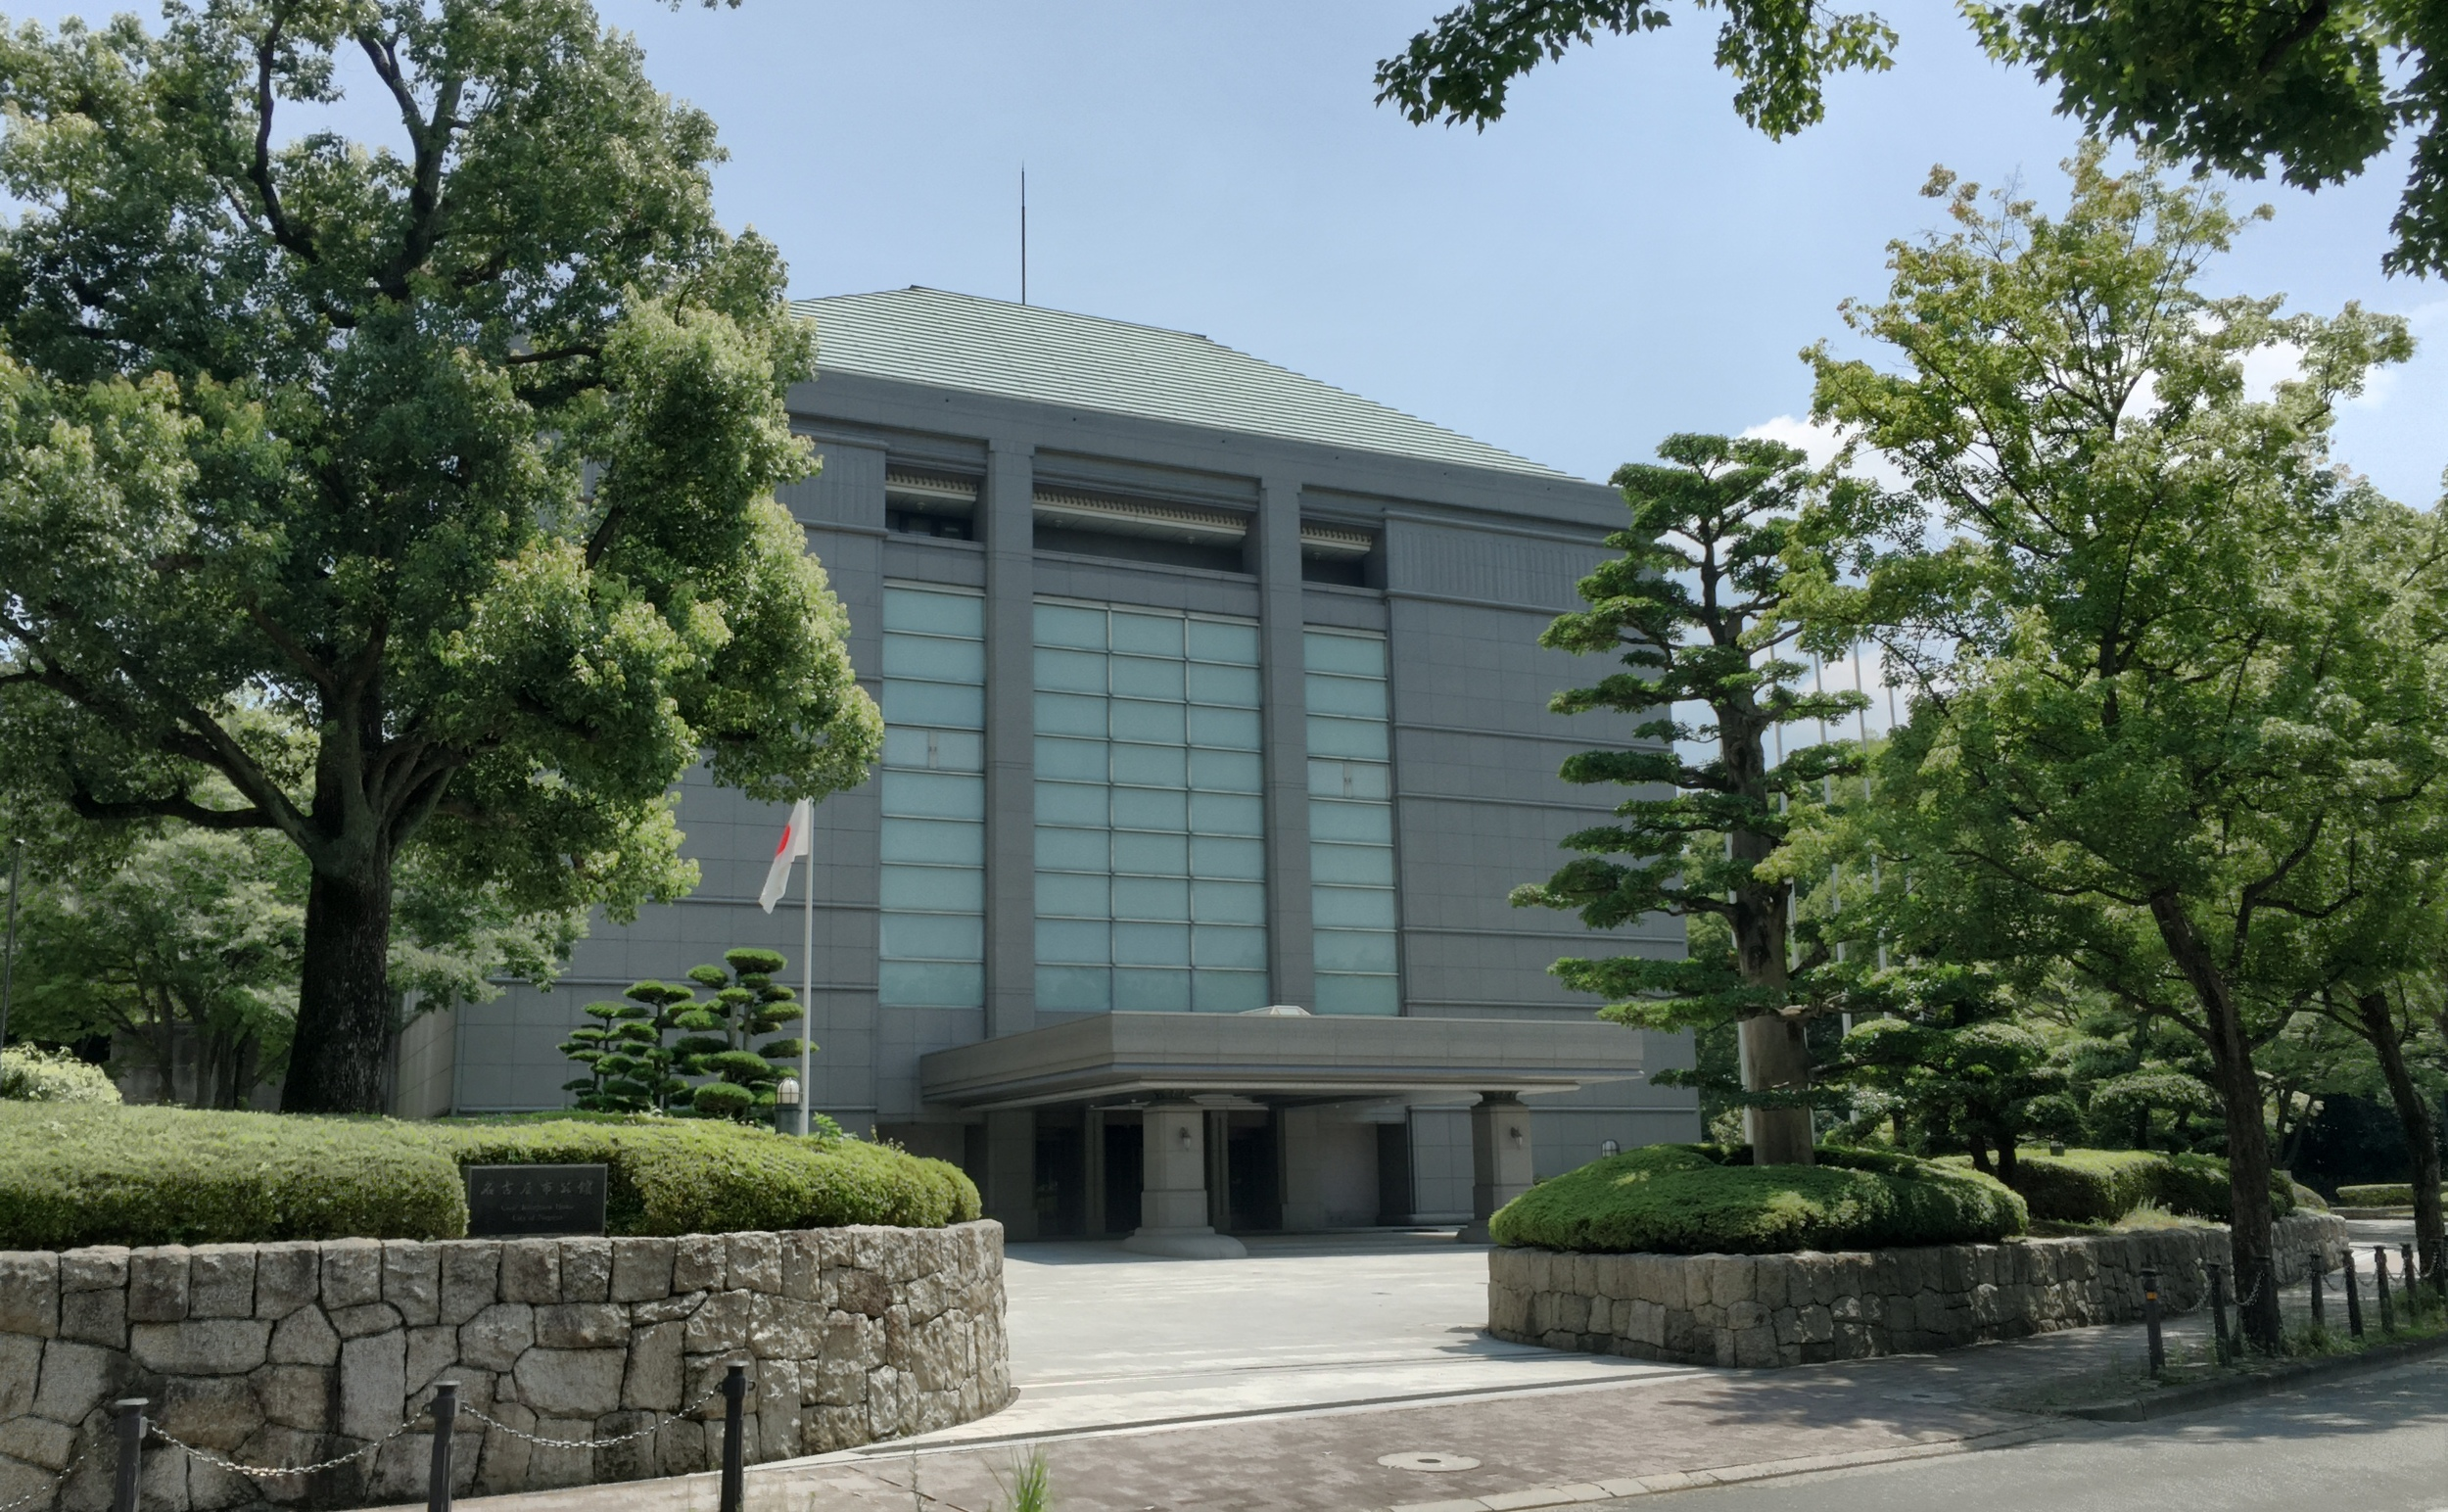 Some official building in Nagoya - beautiful